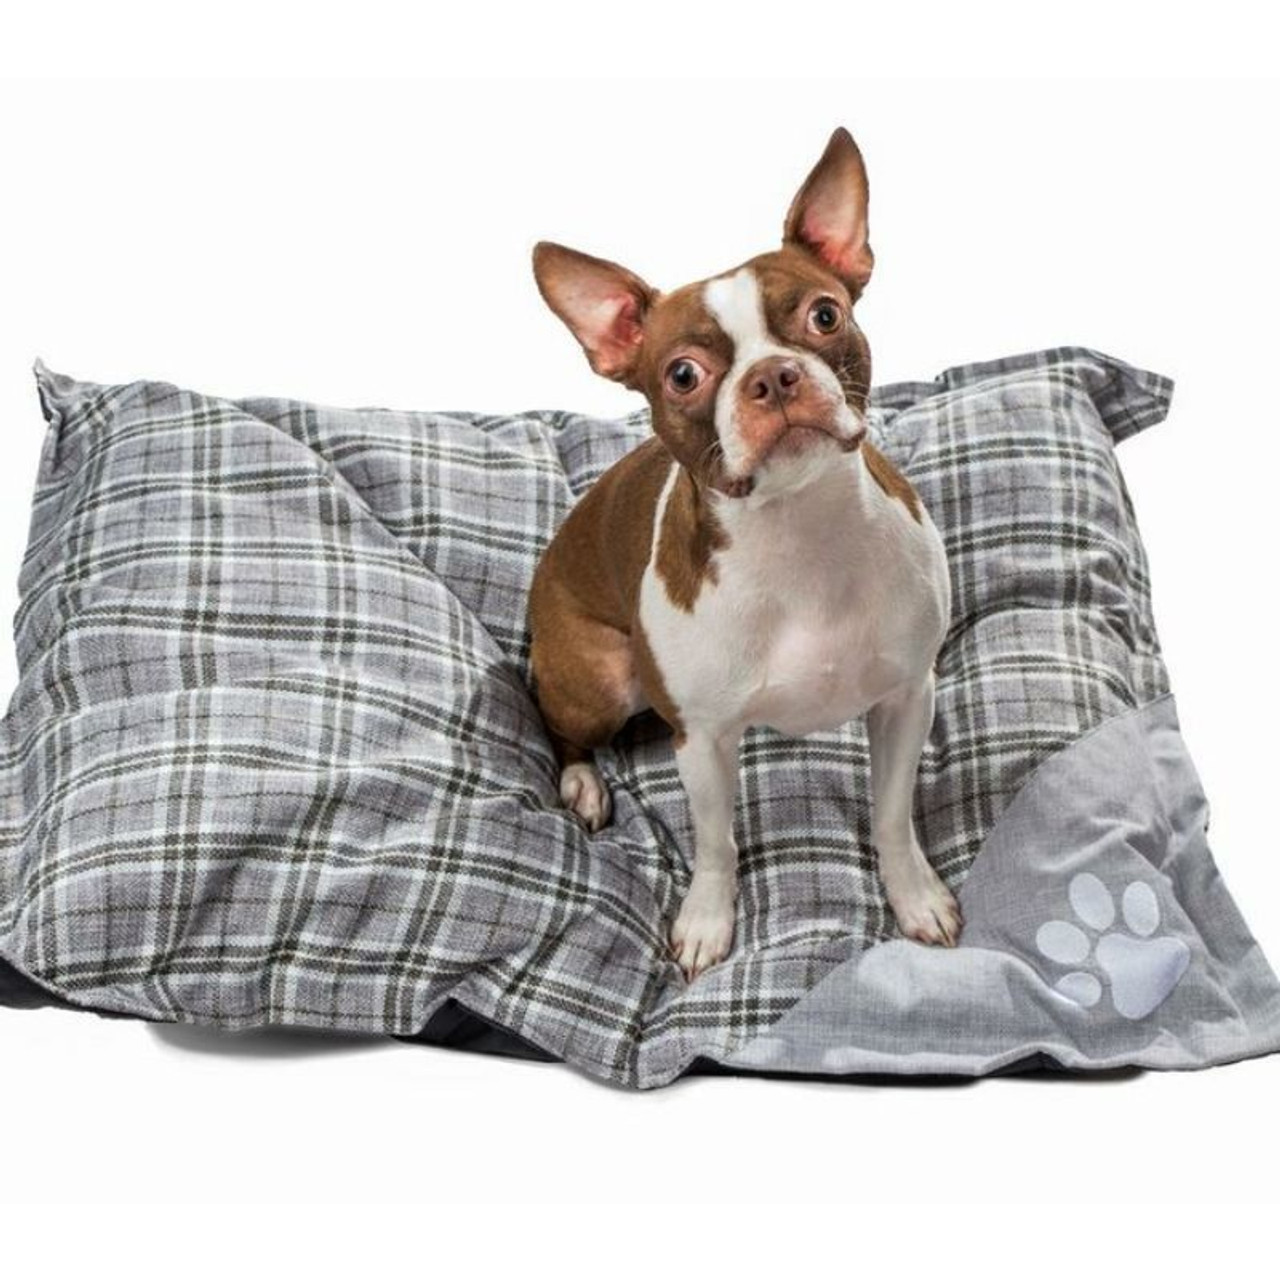 Wags and Whiskers Jumbo Orthopedic Pet Dog Bed Pillow Mattress